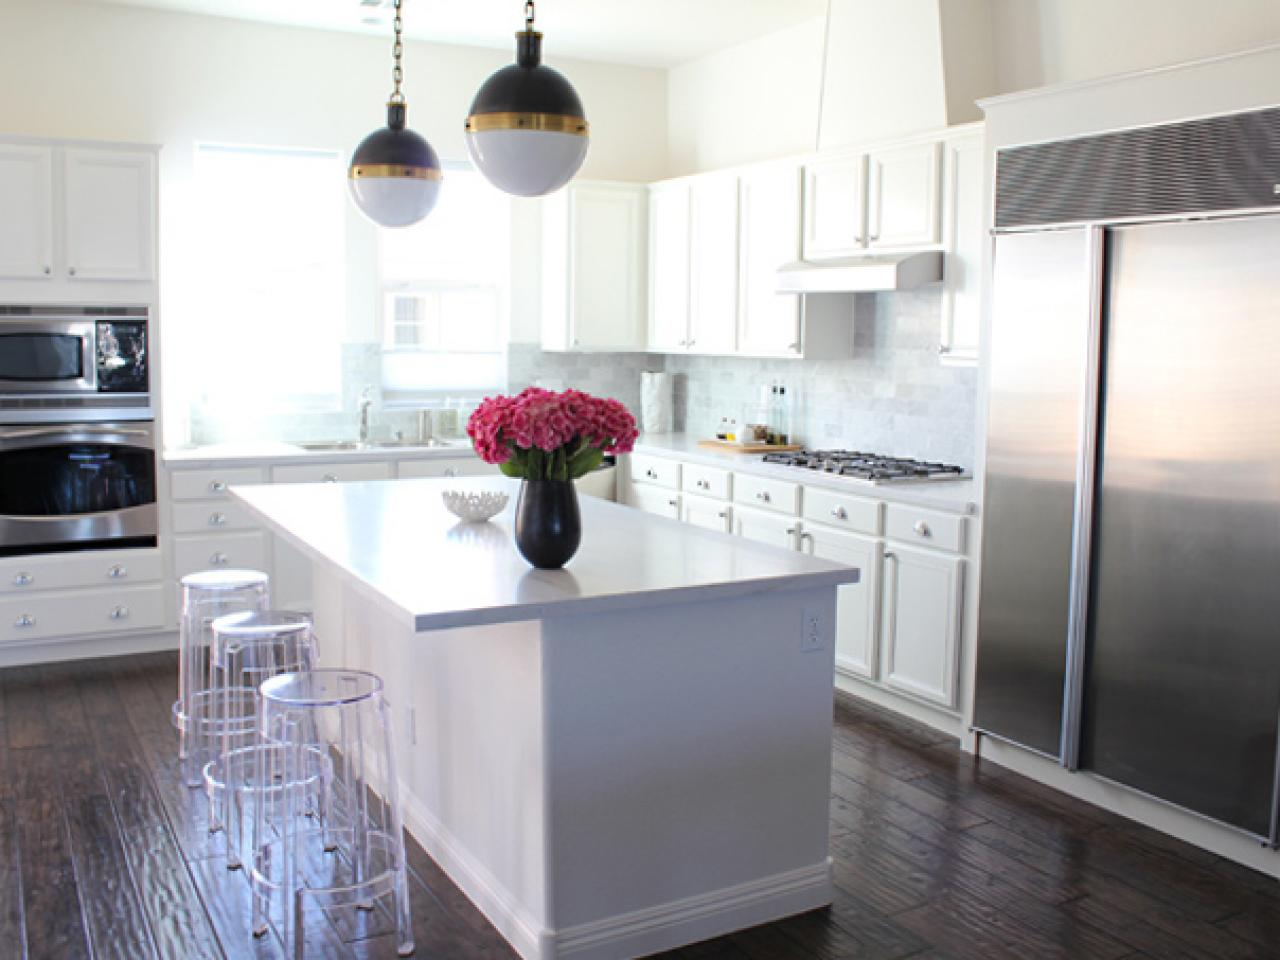 Our 50 favorite white kitchens kitchen ideas design White kitchen backsplash